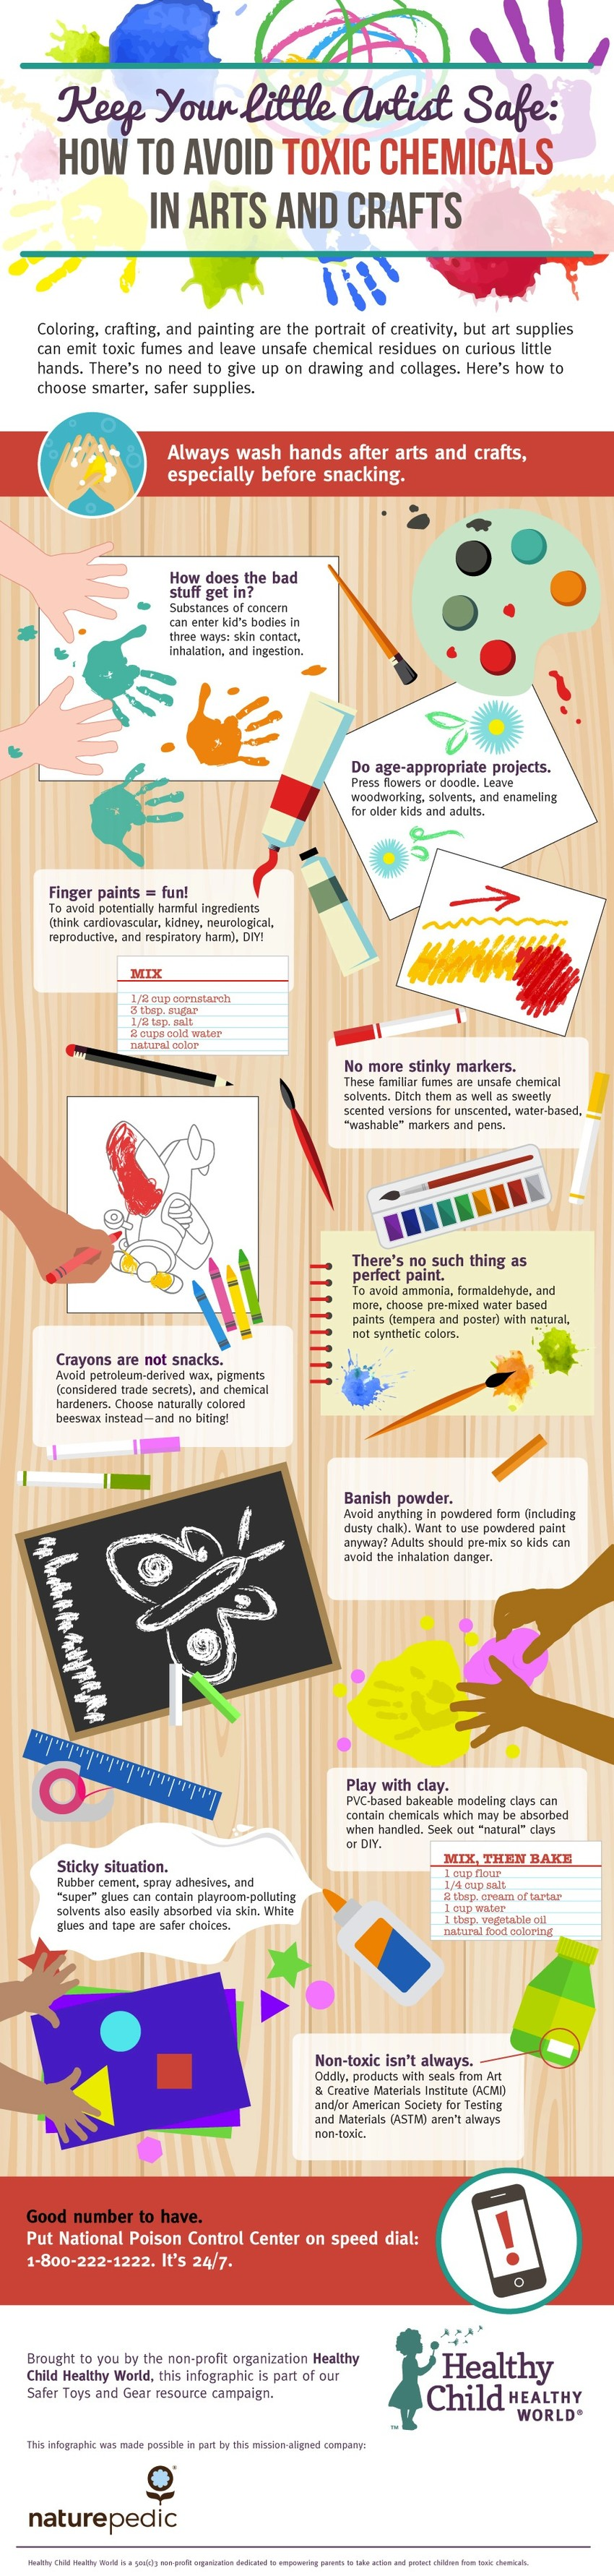 No Toxic Chemicals In Arts Infographic